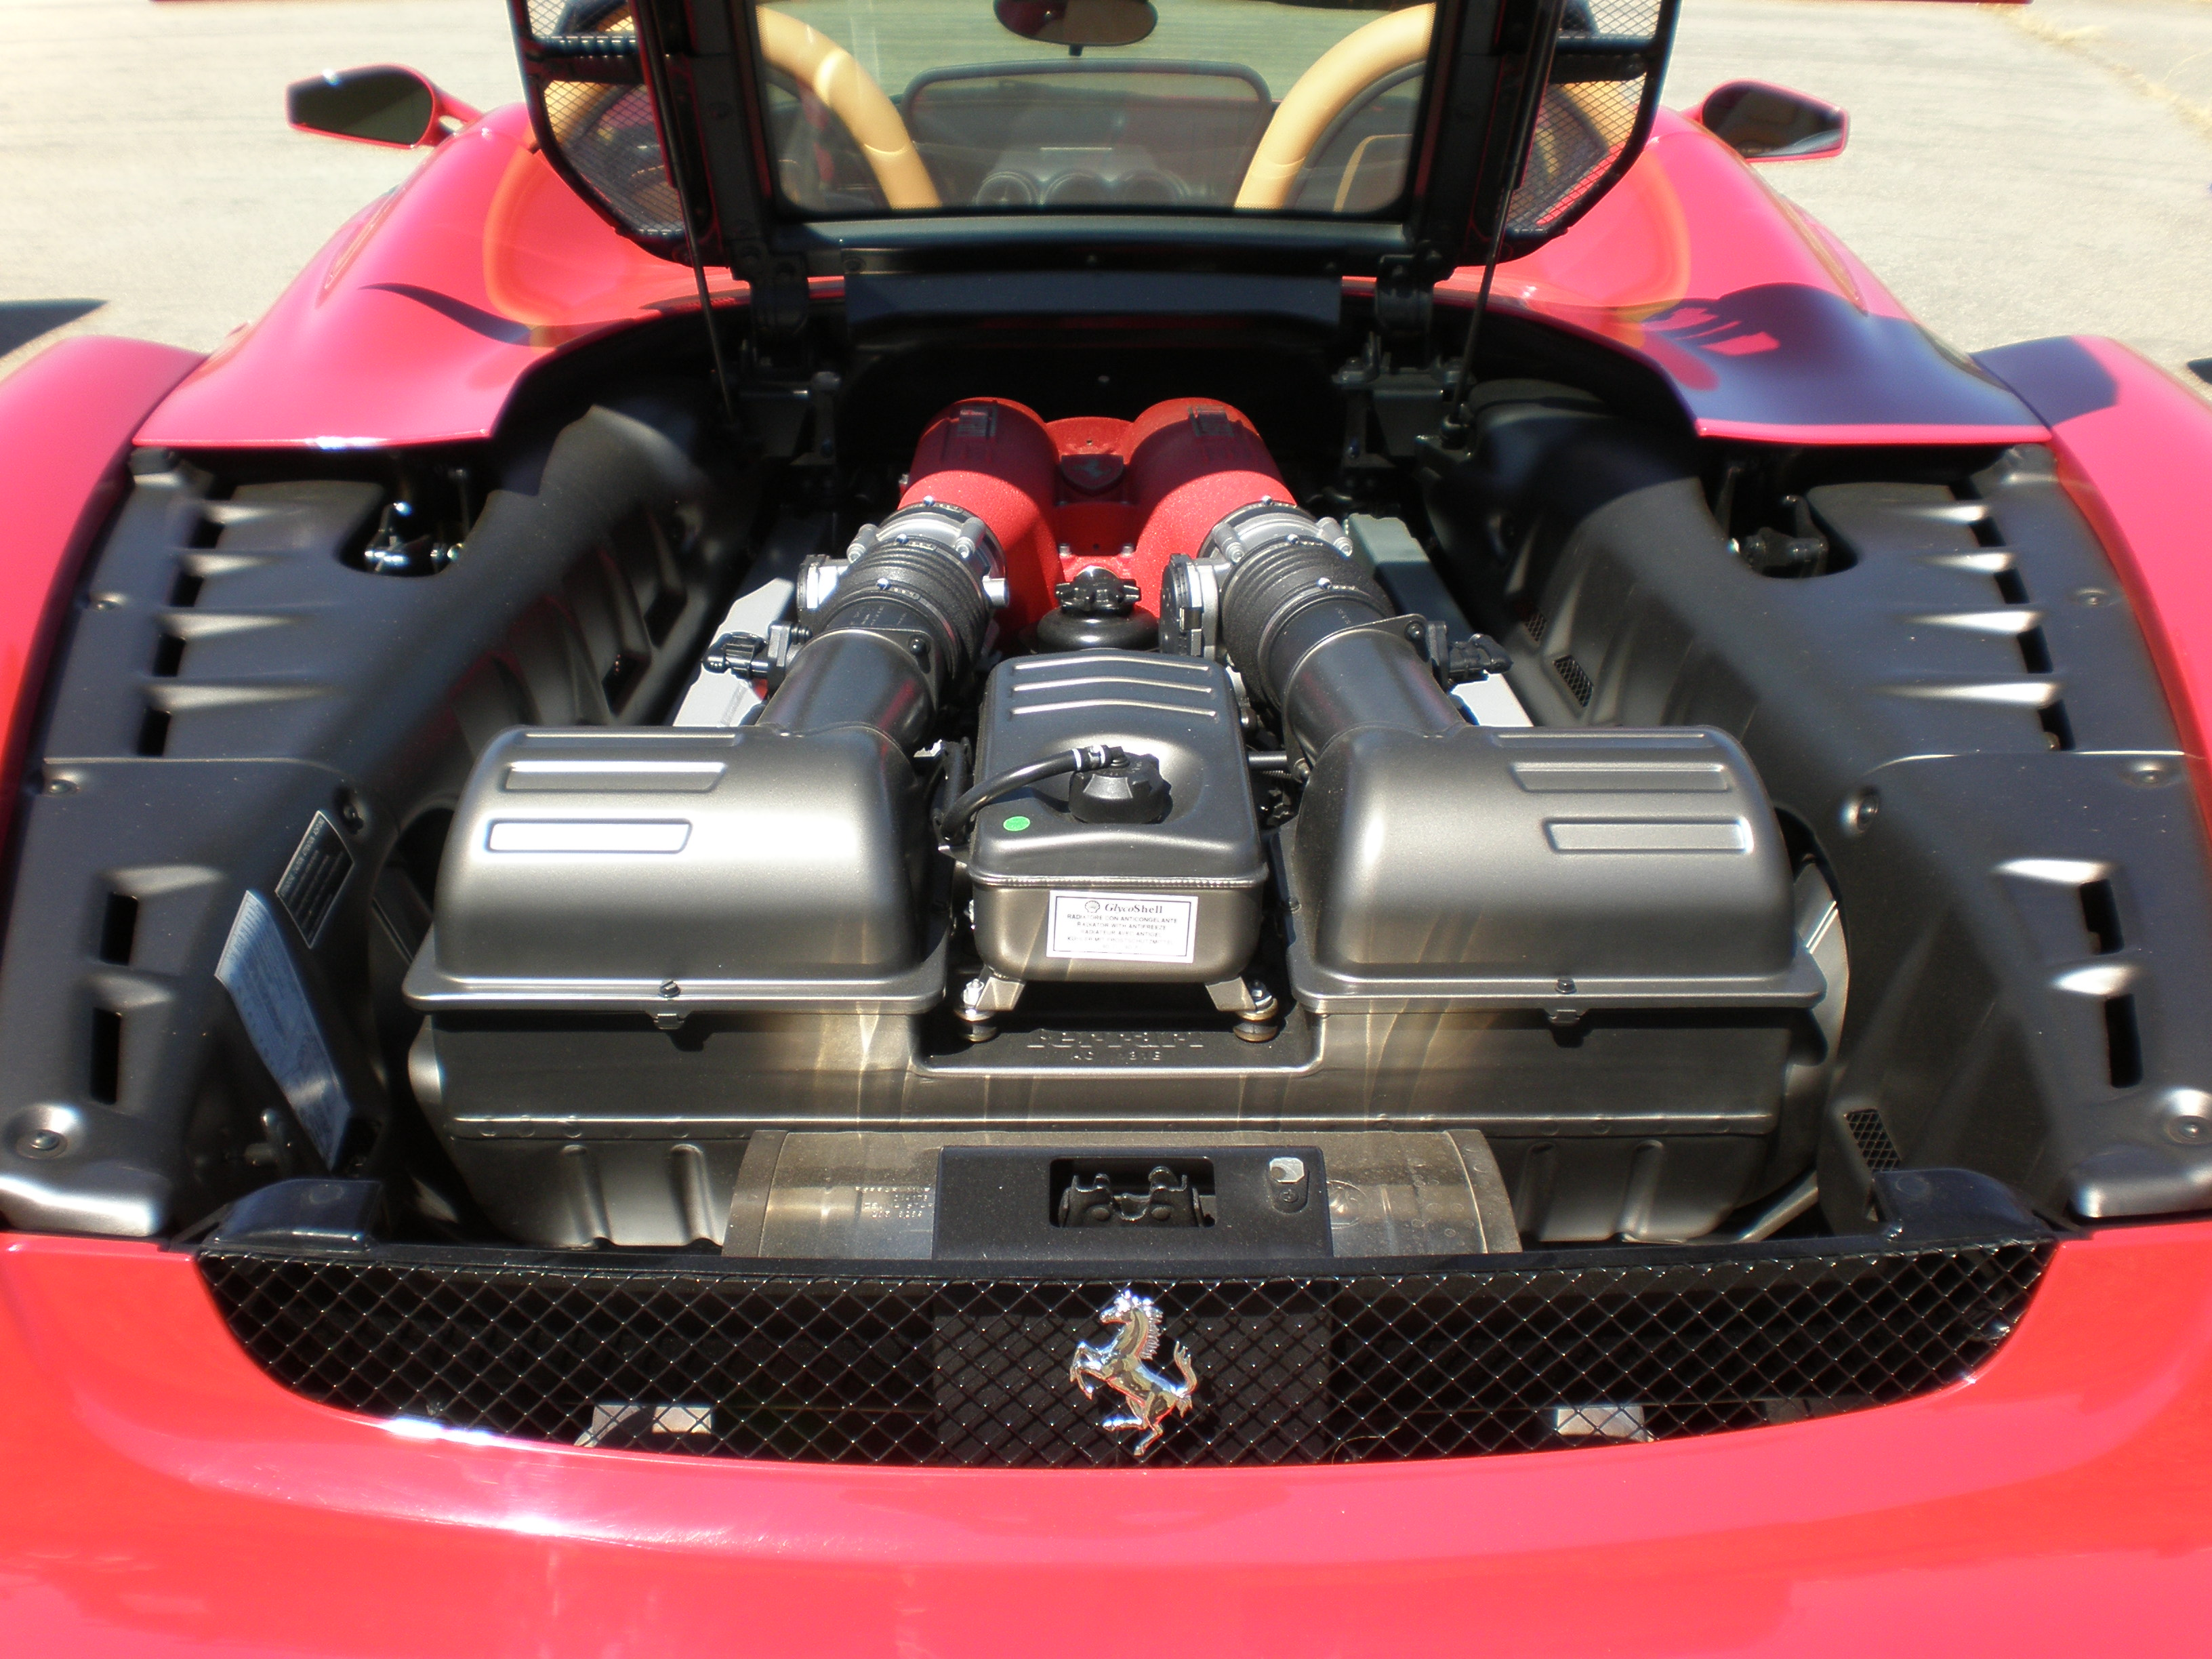 Ferrari F430 engine #2